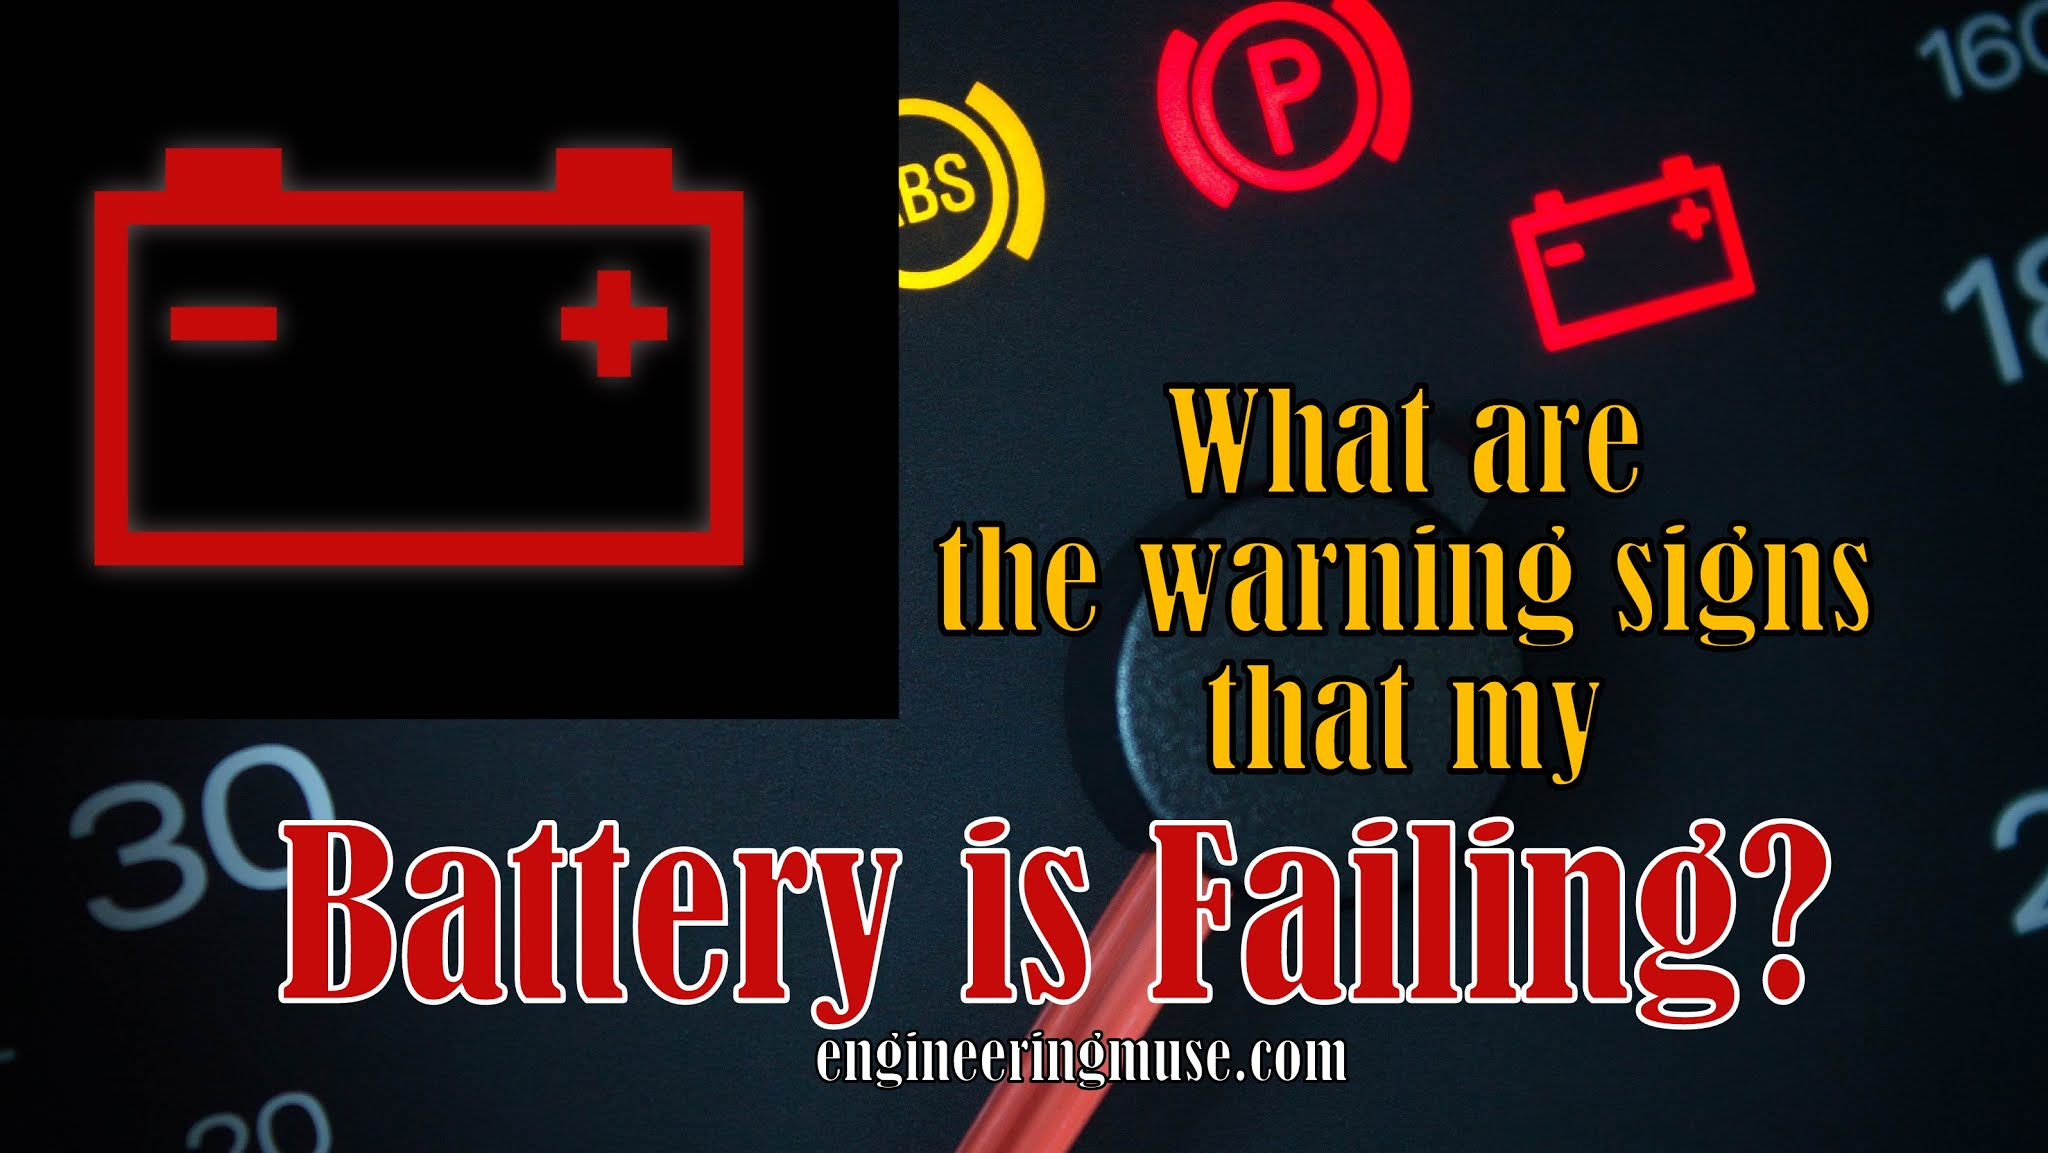 What are the warning signs that my battery is failing?